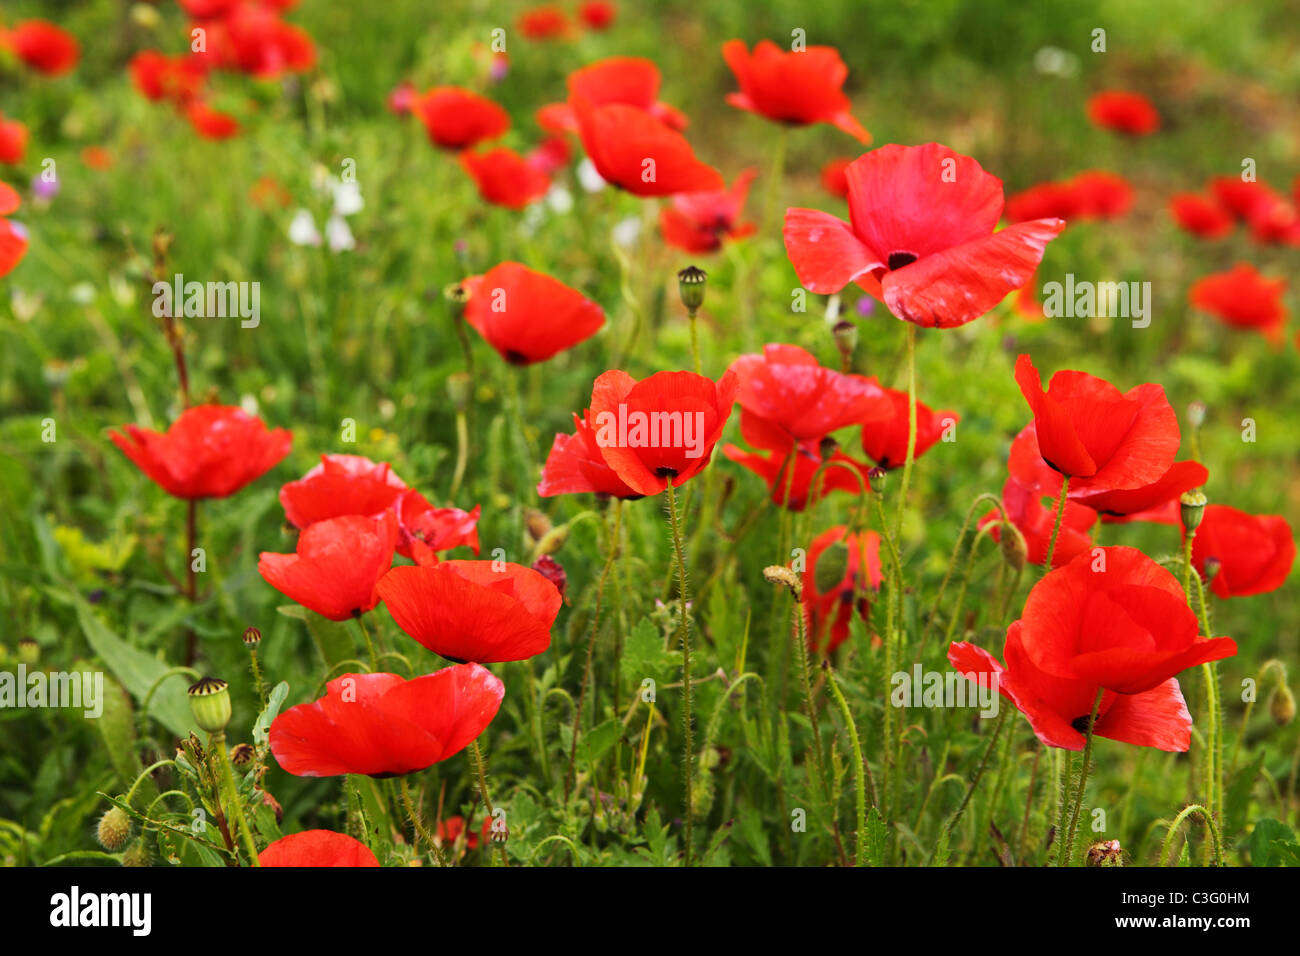 A field of red poppies grows in the spring sunshine. They grow in the Ribentejo District of Portugal. - Stock Image